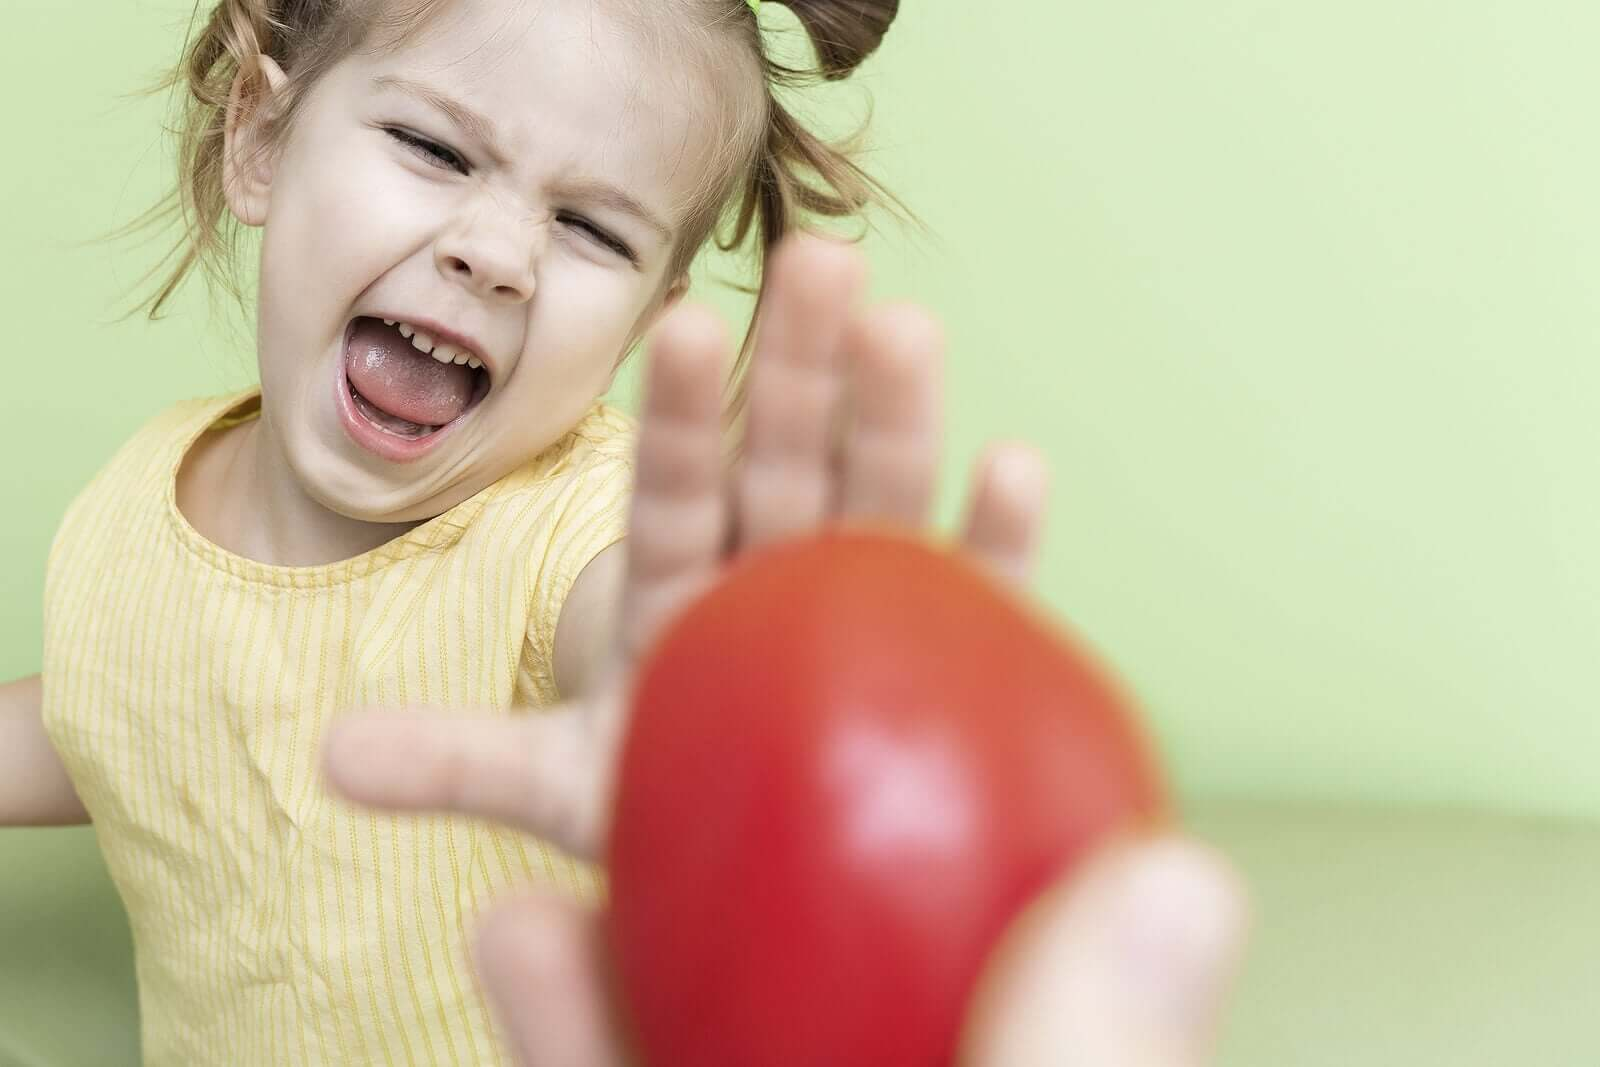 My Child Is Scared of Choking While Eating: What Can I Do?